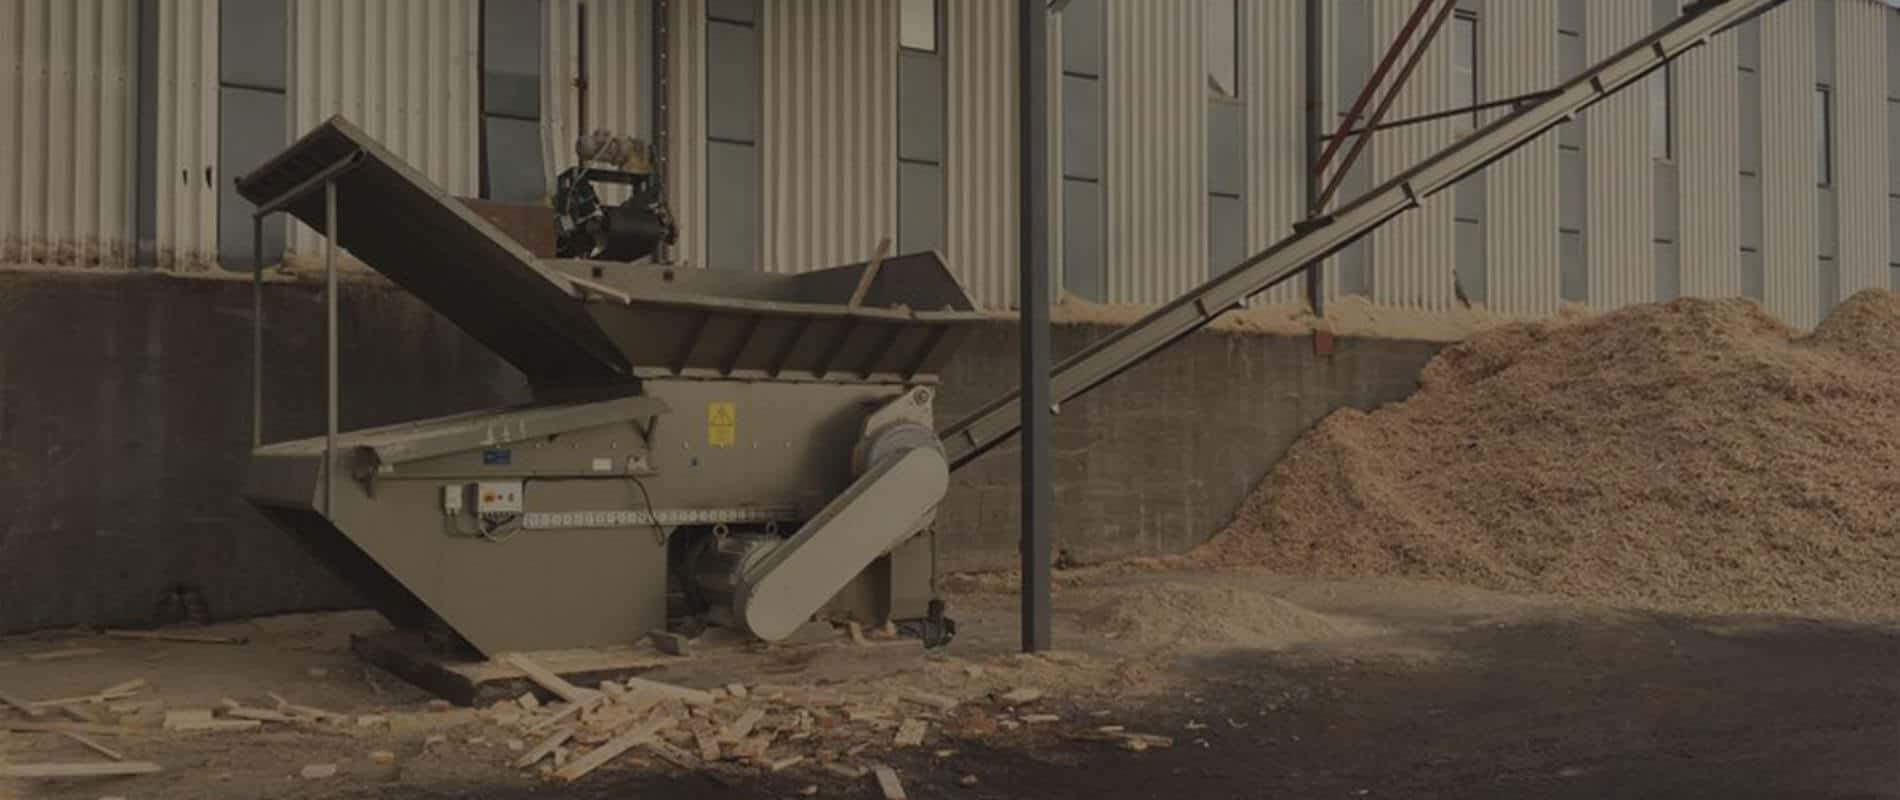 Scanhugger at woodworking plant with band conveyor and wood chips